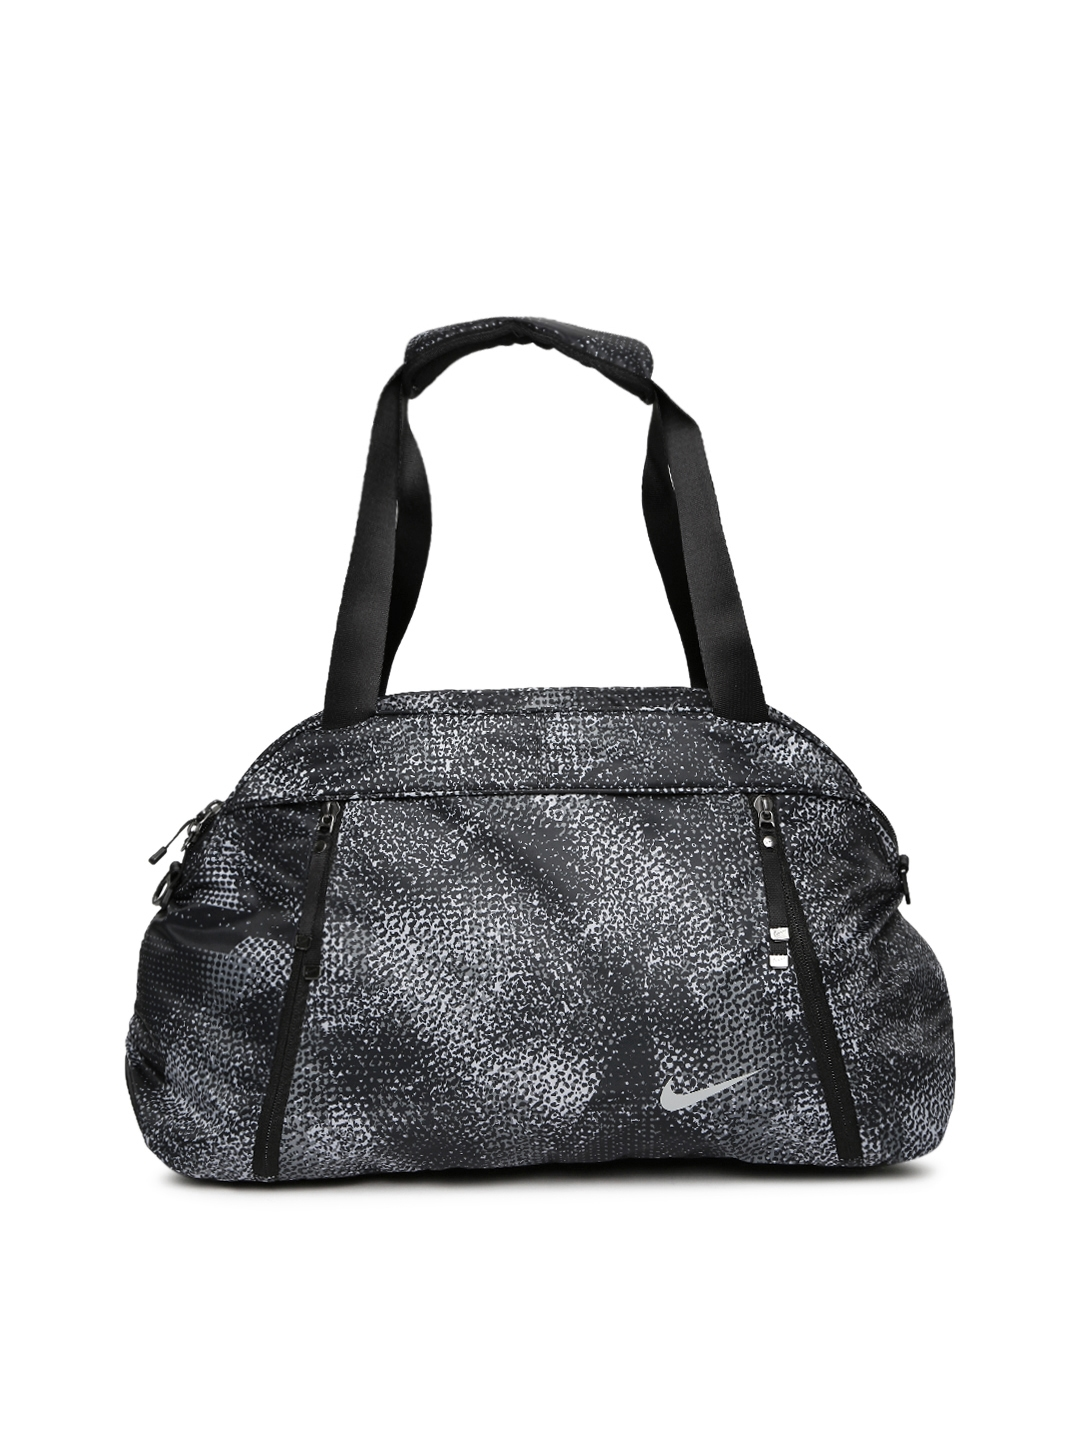 Buy Nike Women Black   Grey Aura Printed Training Duffel Bag ... 23f5627c05